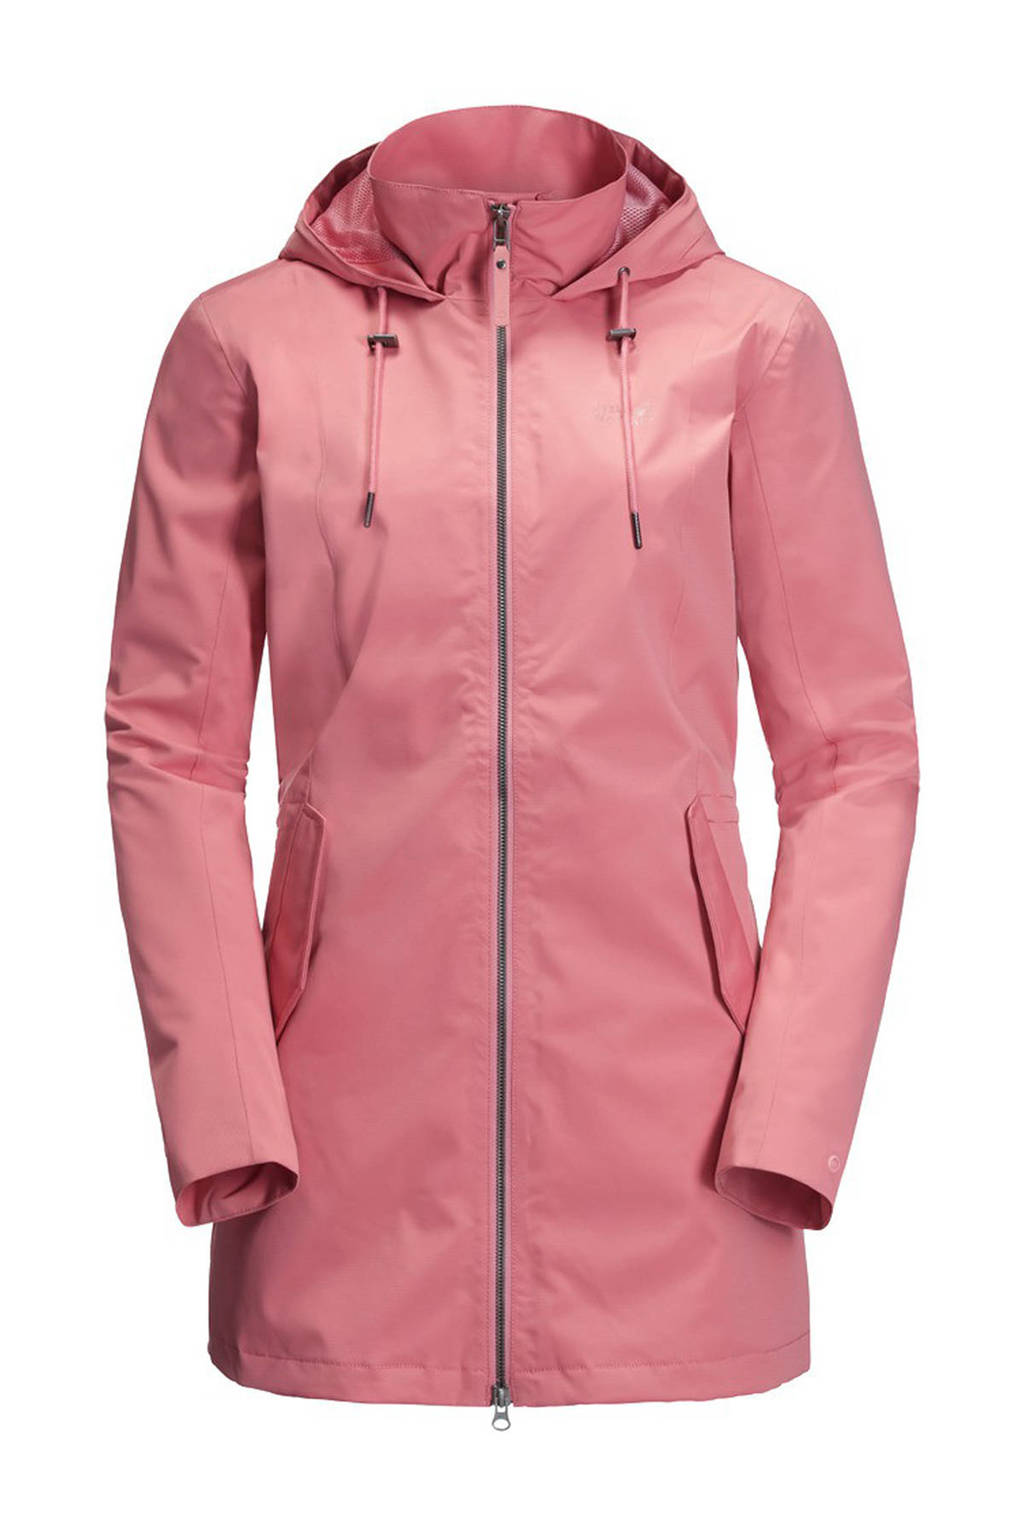 Jack Wolfskin outdoor jas roze, Rose-Quartz